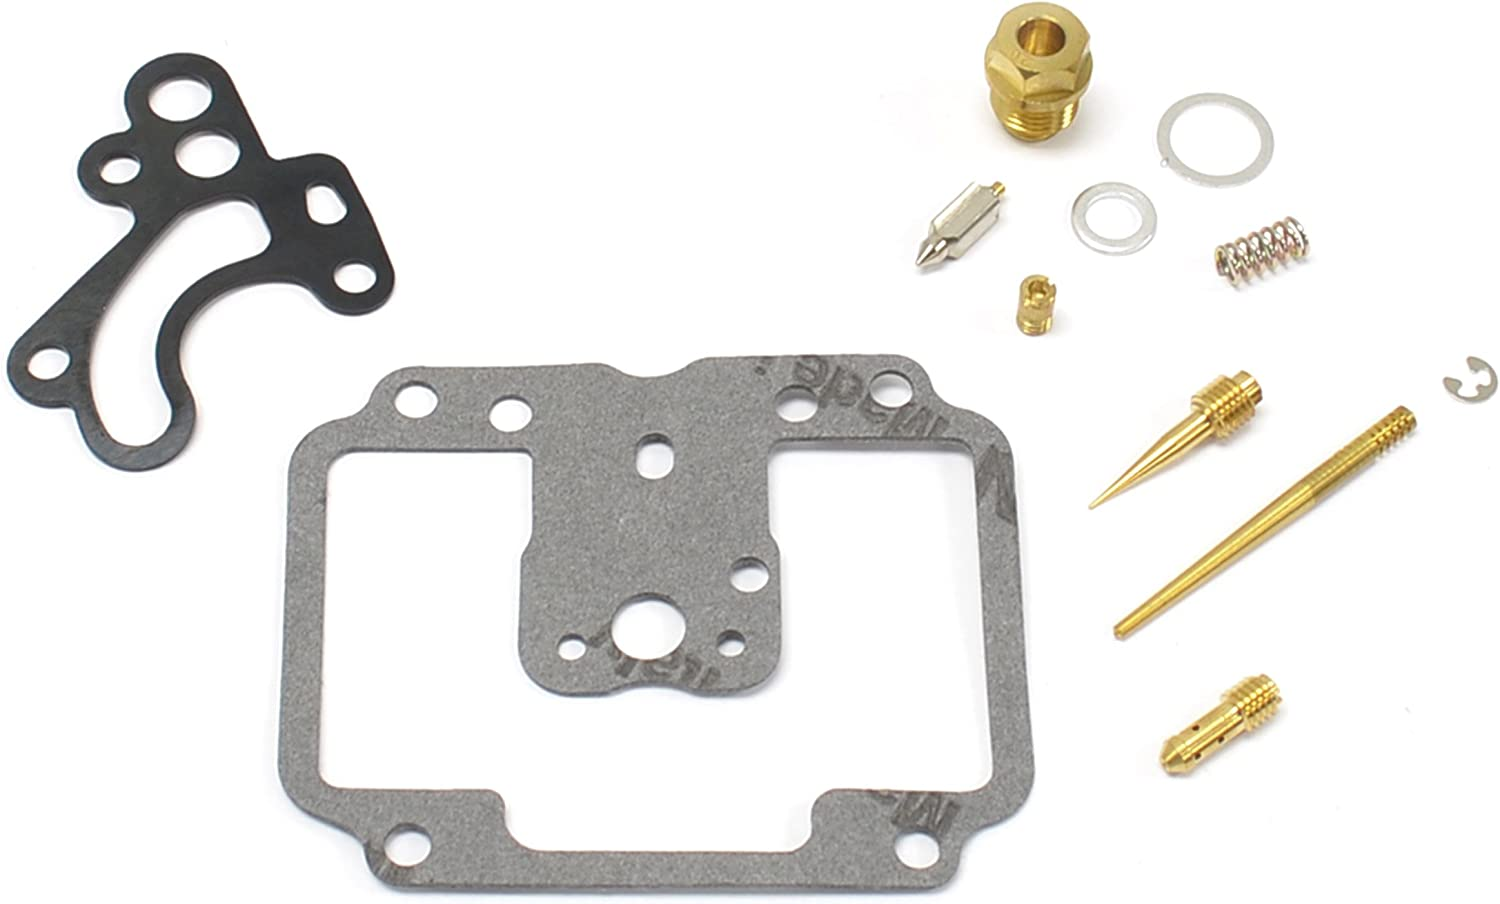 Kawasaki KZ750 Twins 76-79 Carburetor Carb Repair Rebuild Jet Seal Kit by Niche Cycle Supply